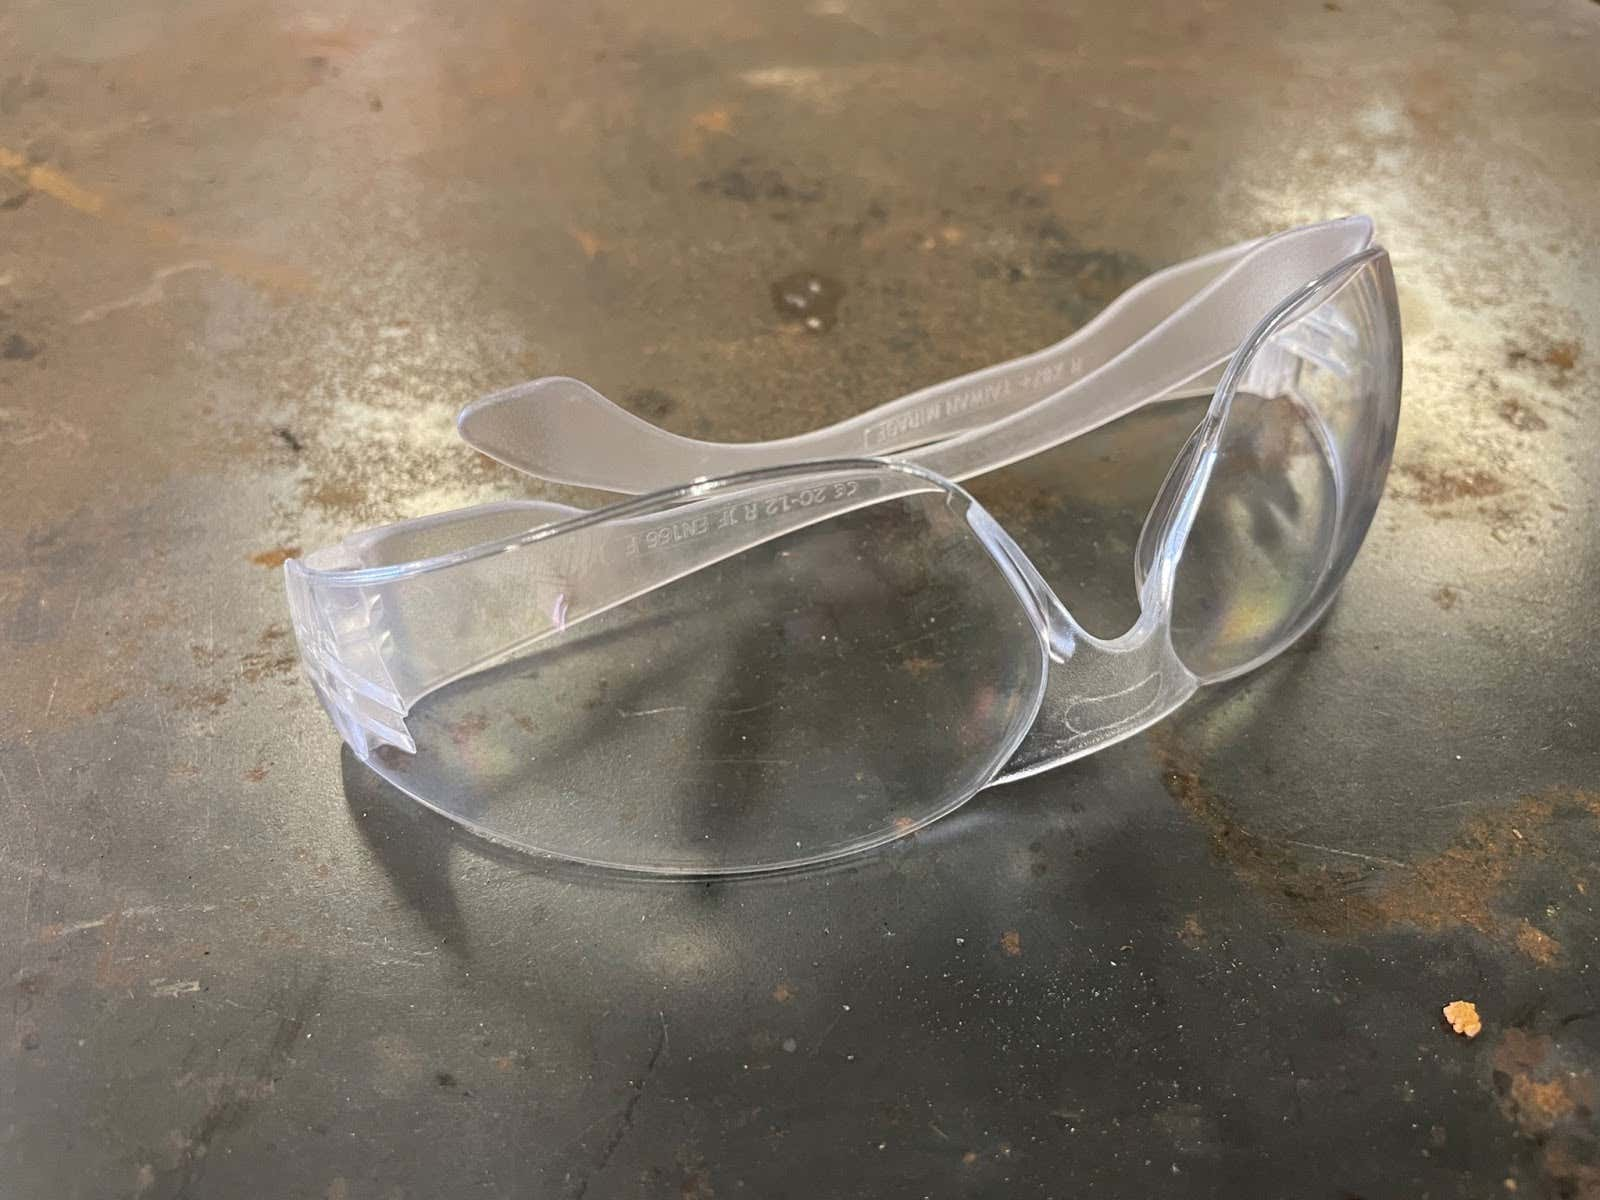 Radians Clear Safety Glasses, Scratch Resistant, Full Wrap